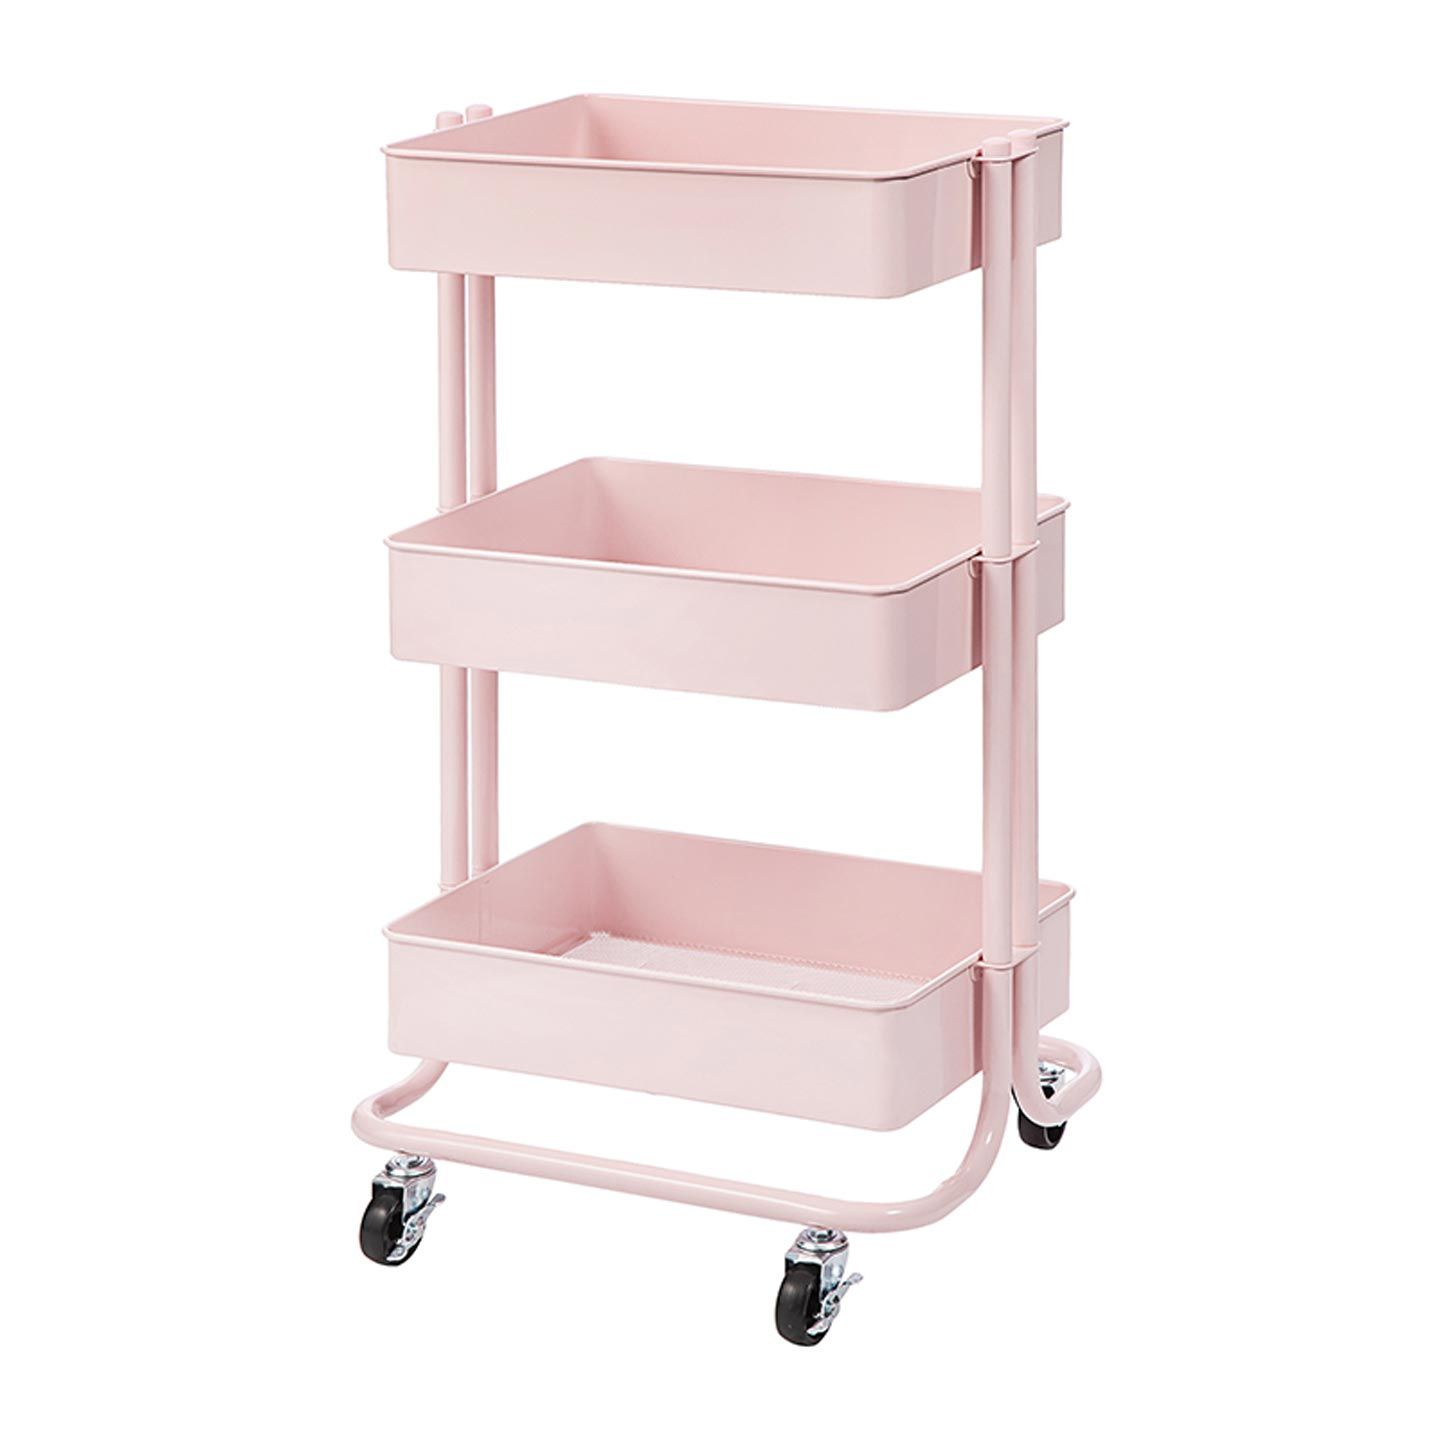 Store And Move Your Craft Supplies With This Blush Pink Metal Rolling Cart Its Three Drawers Have Wide Intervals To Acc Rolling Cart Pink Dorm Rooms Pink Dorm